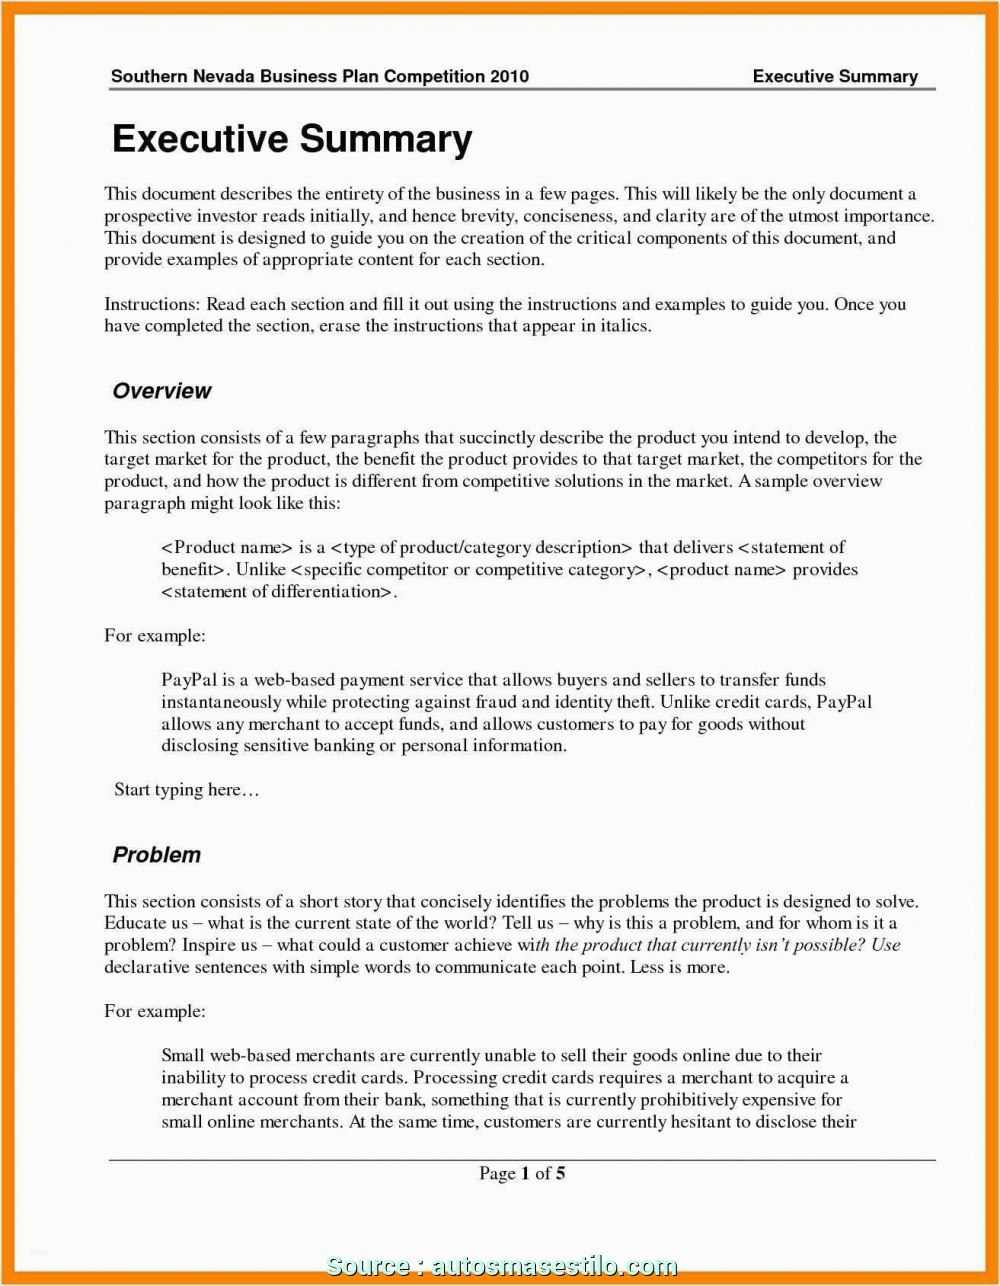 Simple Cyber Cafe Business Plan Template Pdf Ideas  Tiger Growl With Executive Summary Template For Business Plan